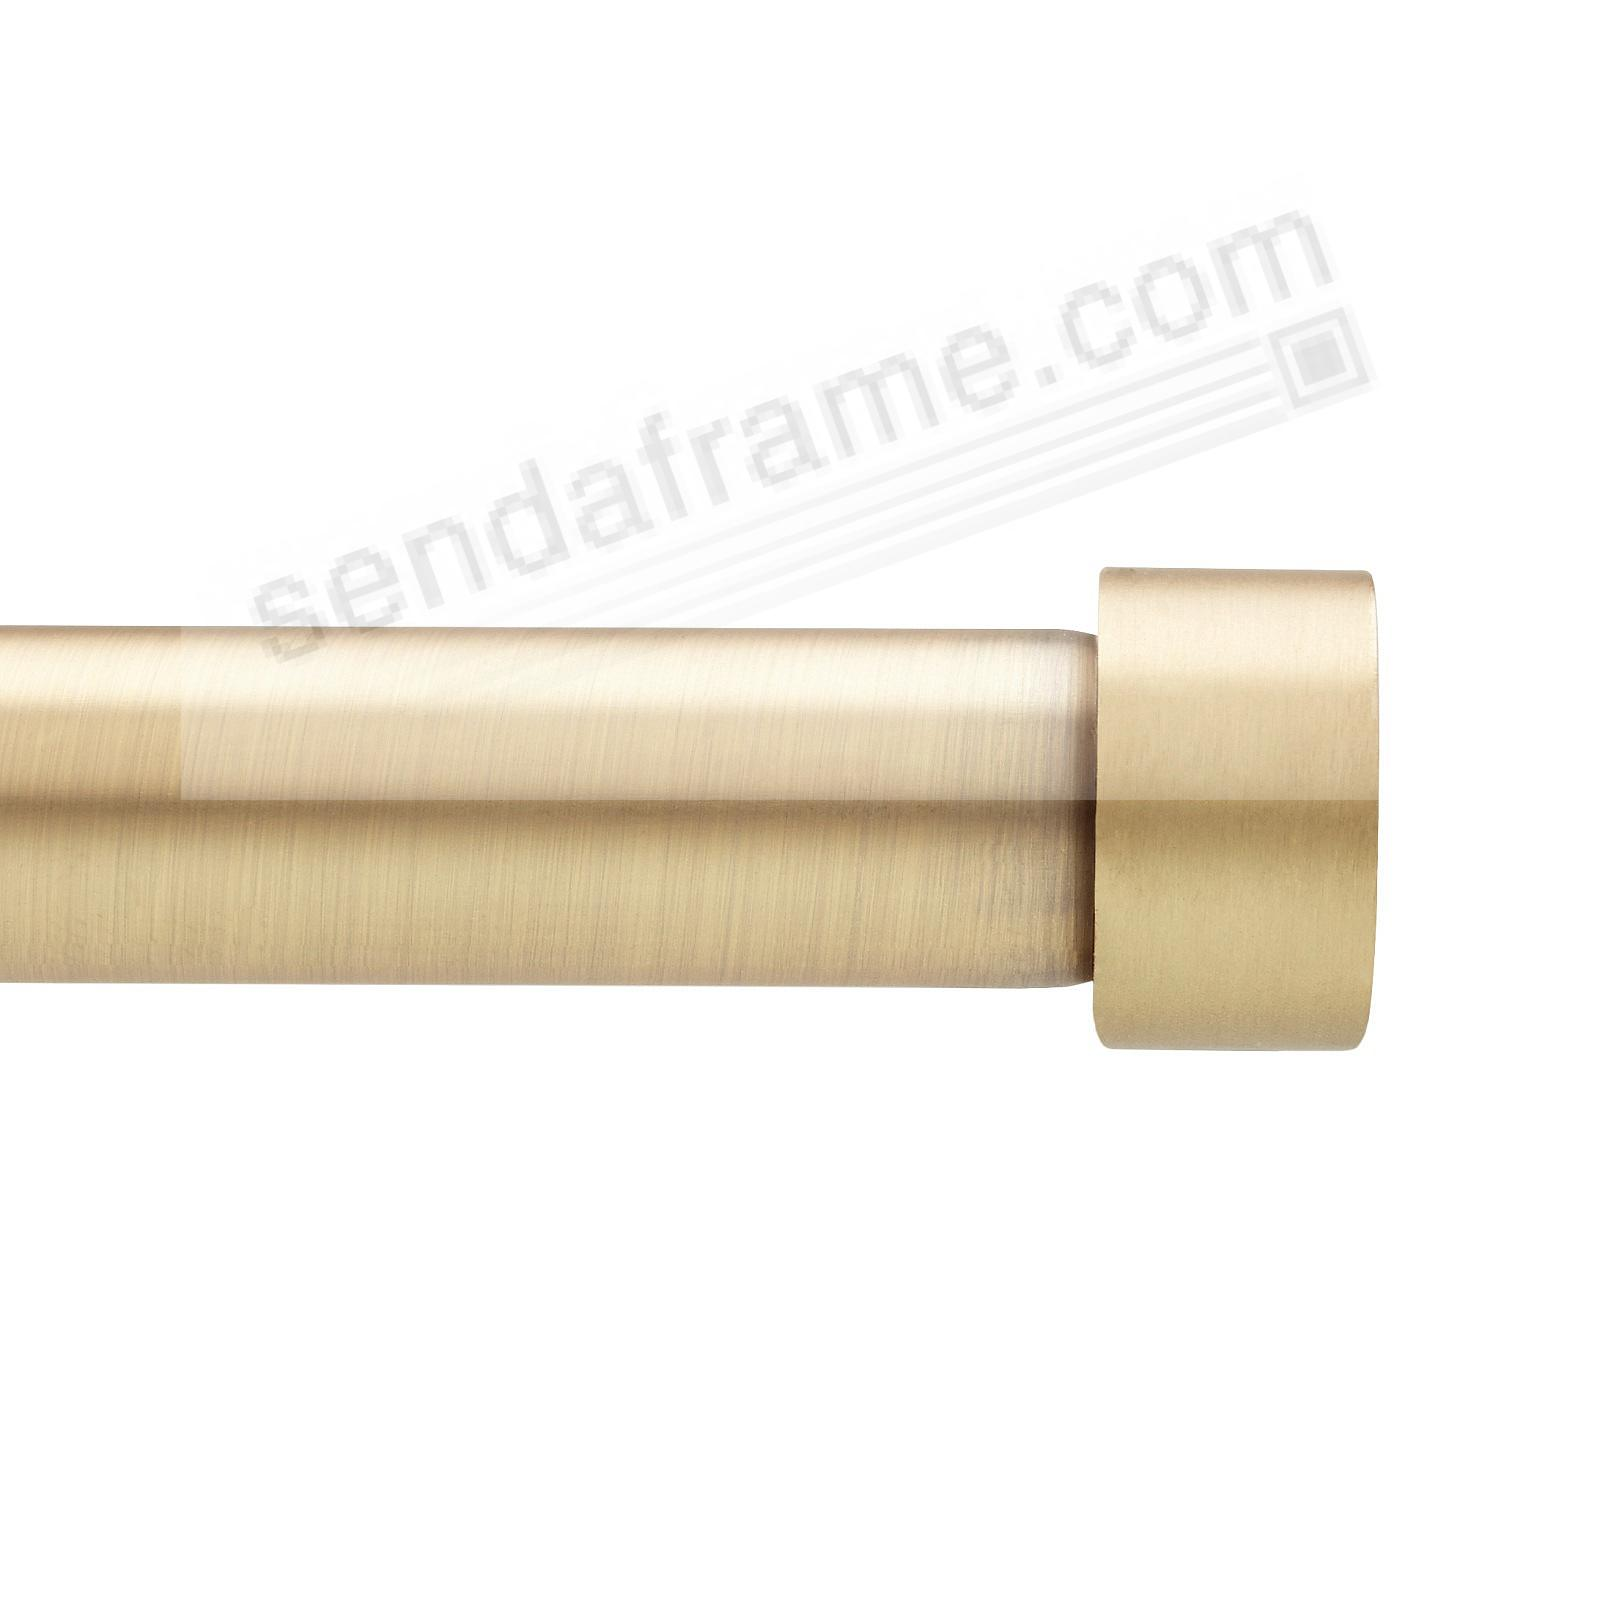 CAPPA 1in 36-66in BRASS SINGLE ROD Drapery Hardware by Umbra®